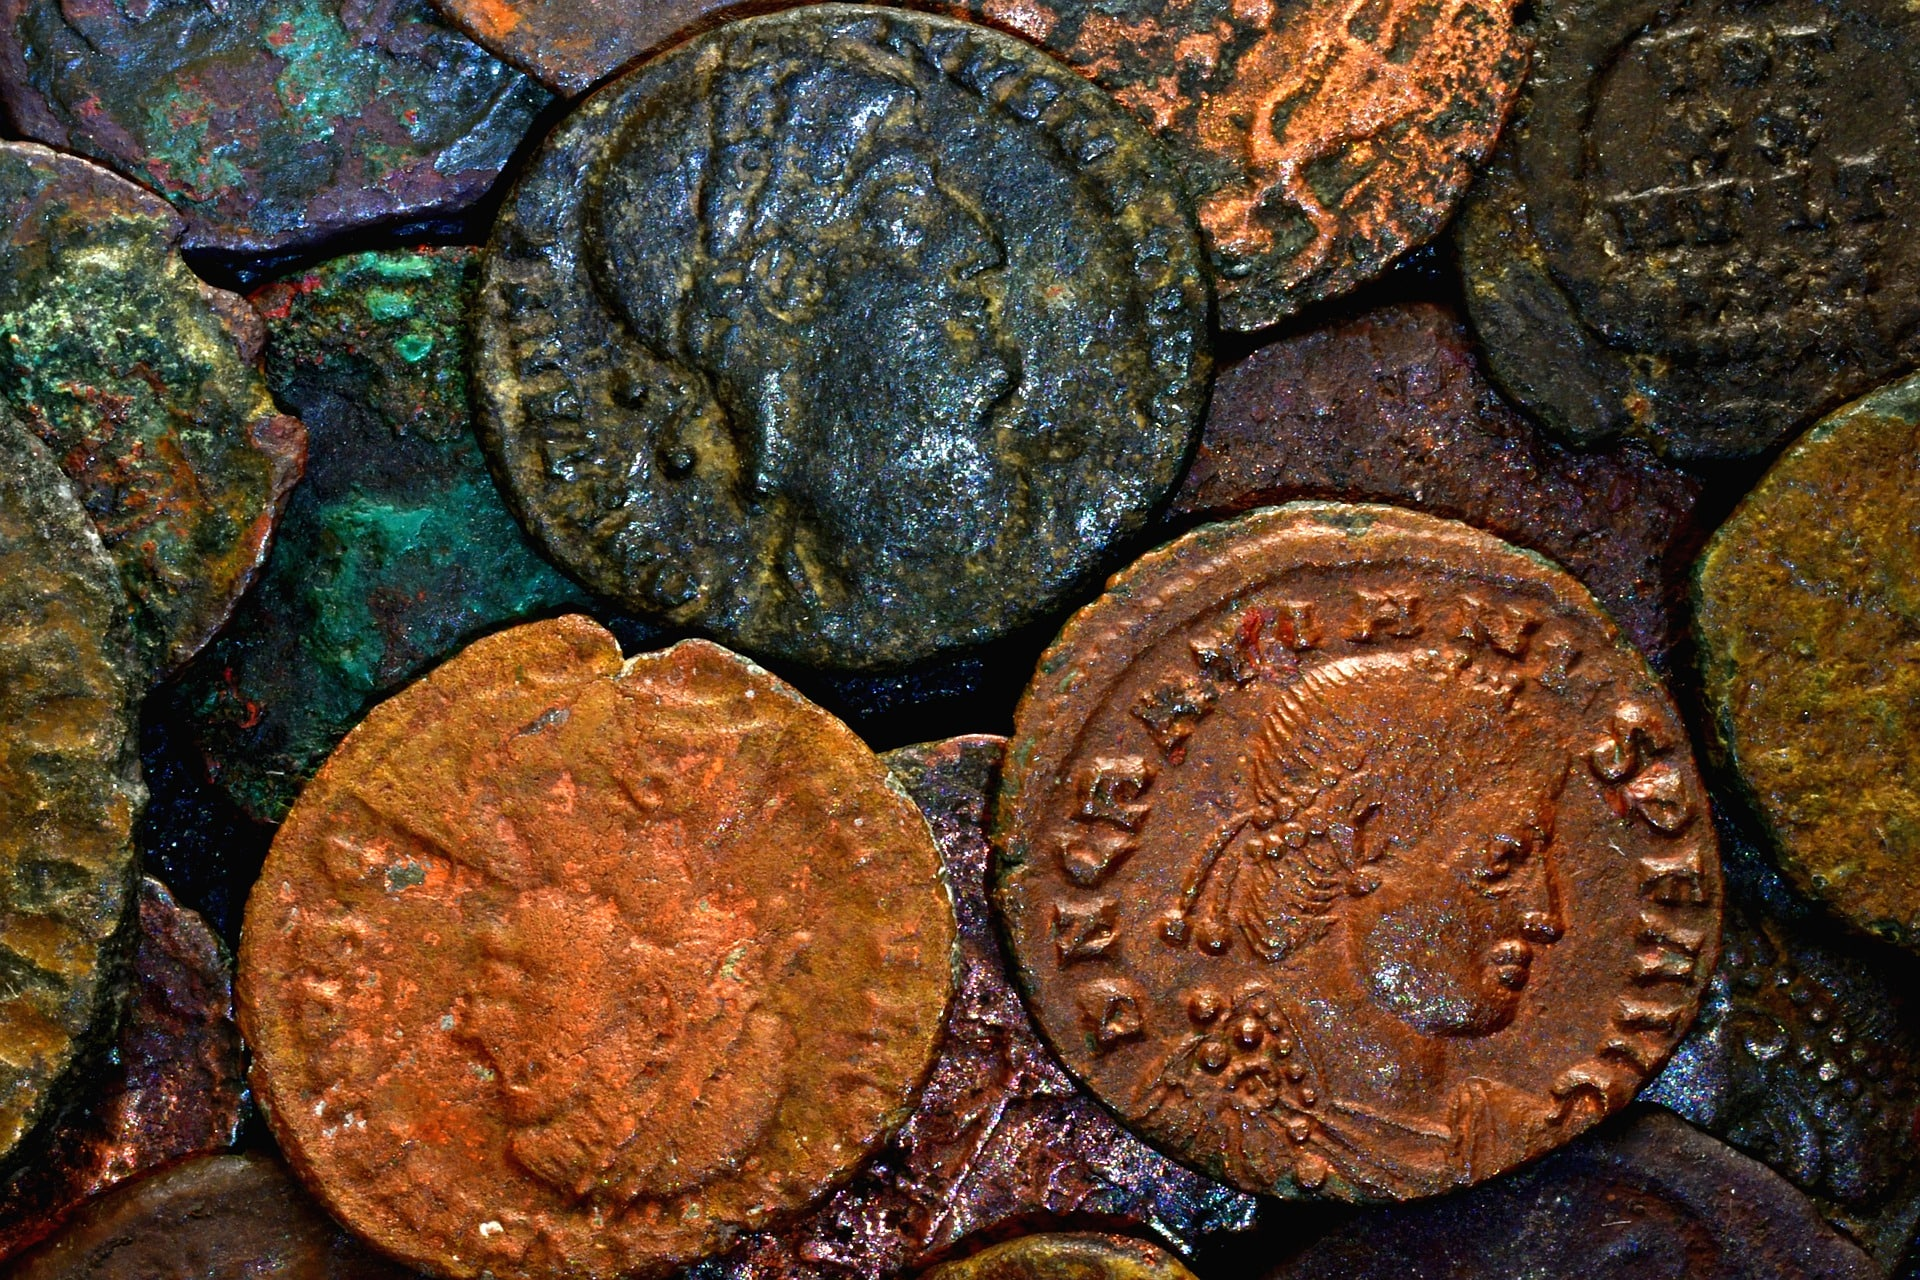 Ancient Coins as Collections